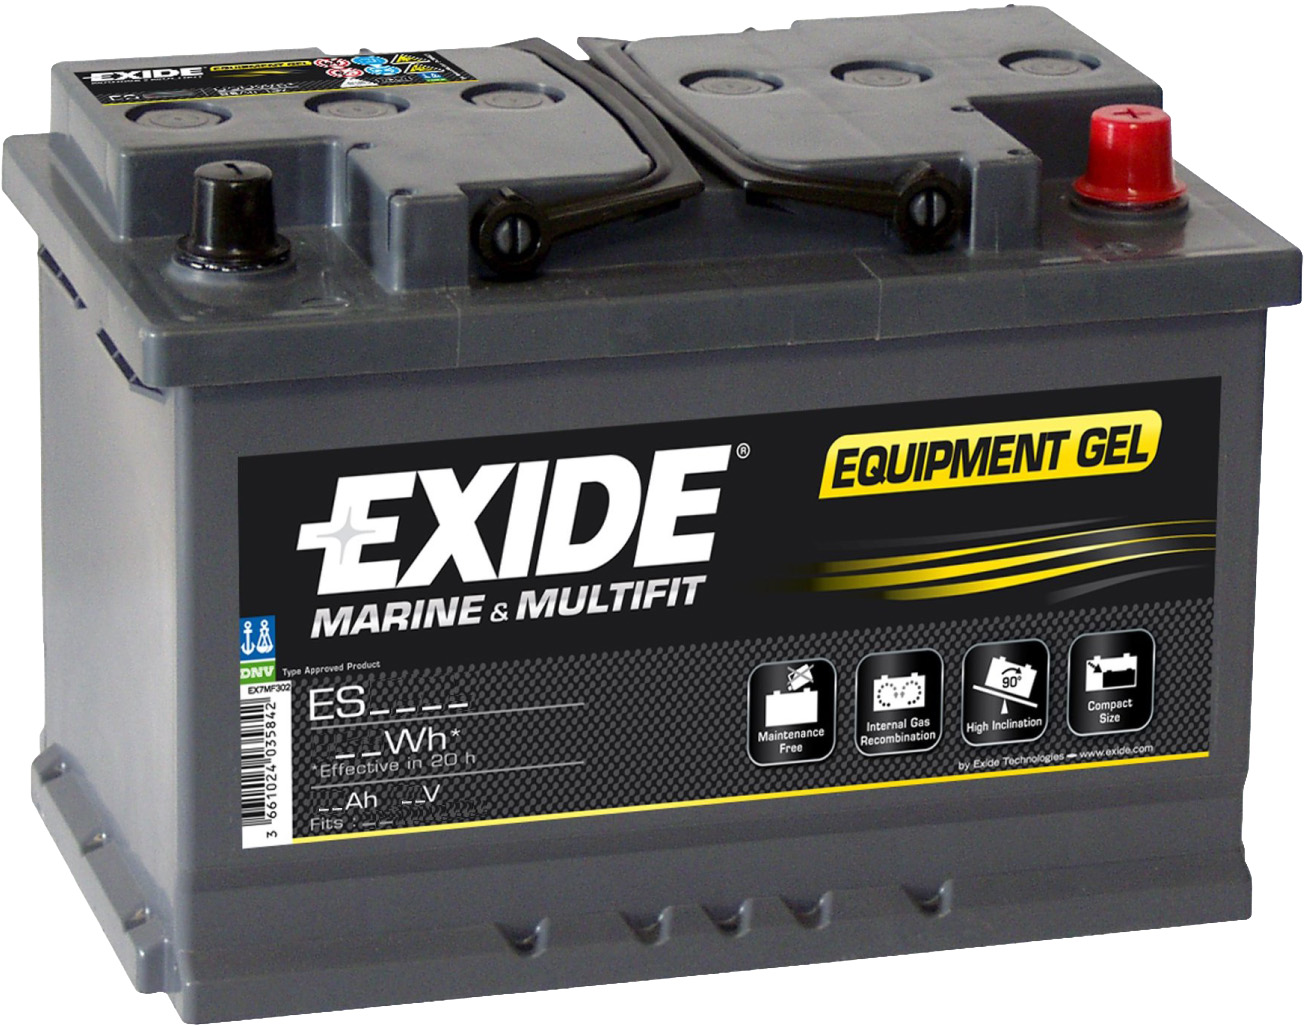 Аккумулятор Exide Equipment Gel ES900